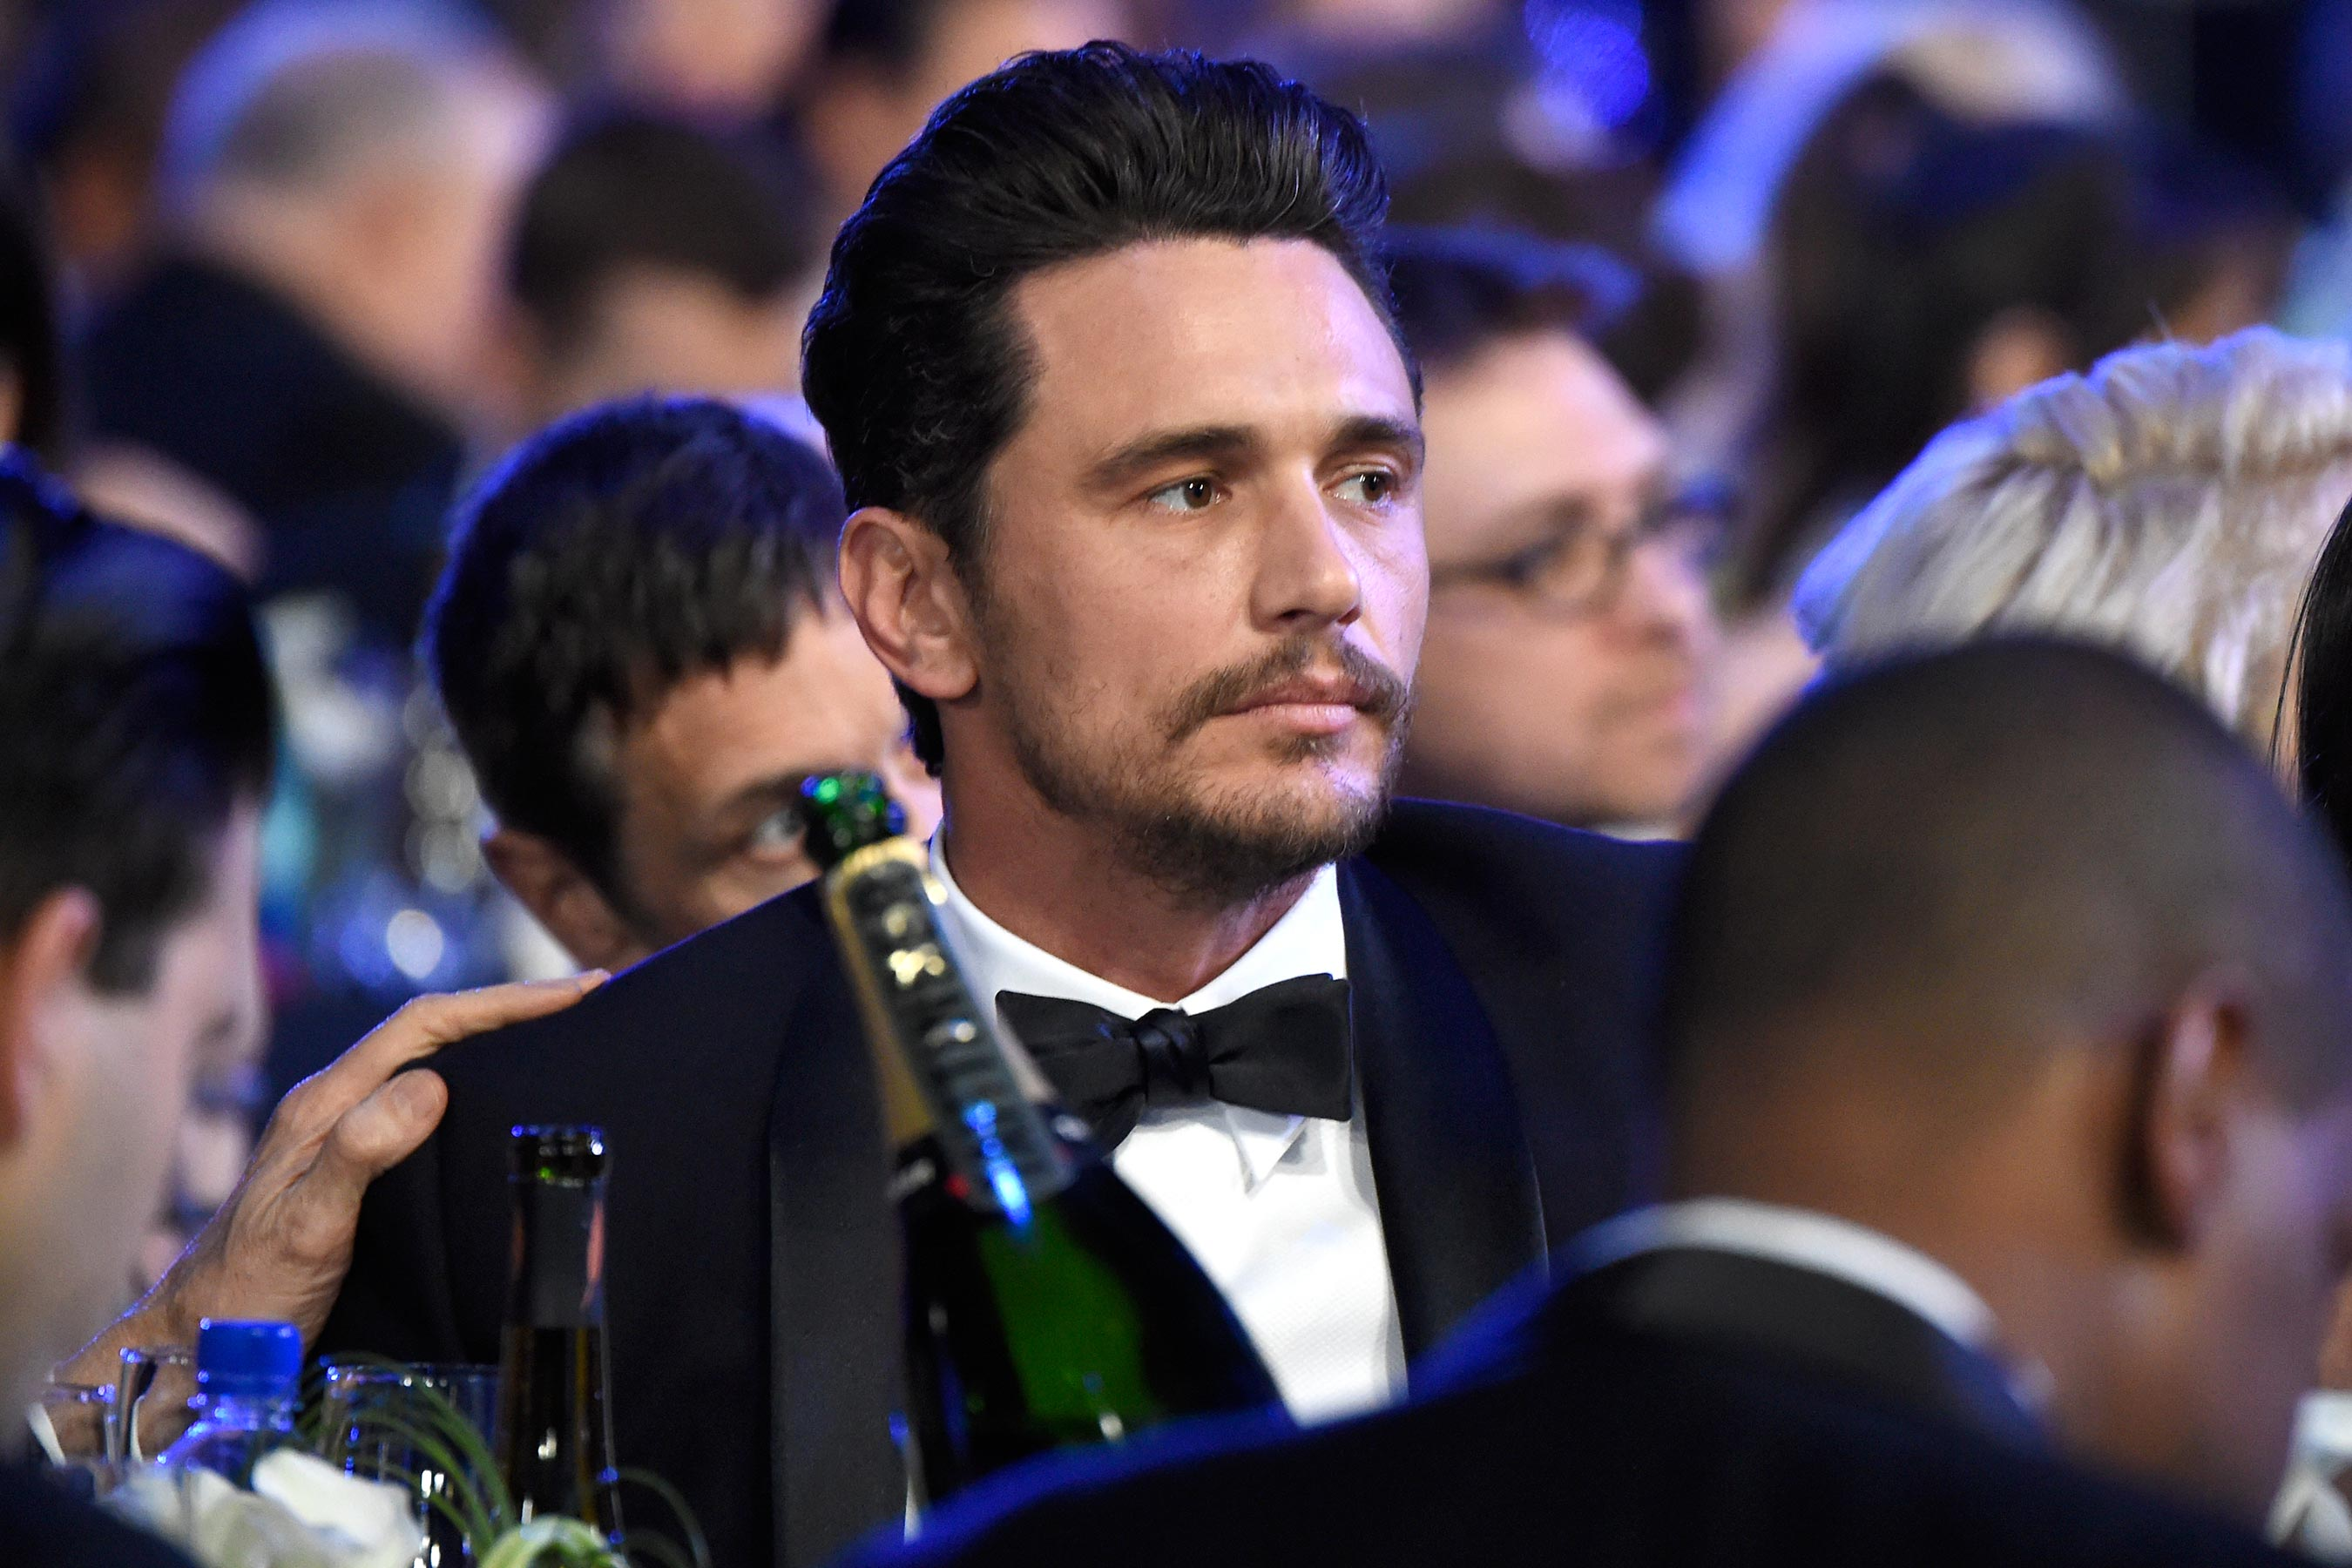 James Franco digitally erased from 'Vanity Fair' cover after sexual misconduct allegations